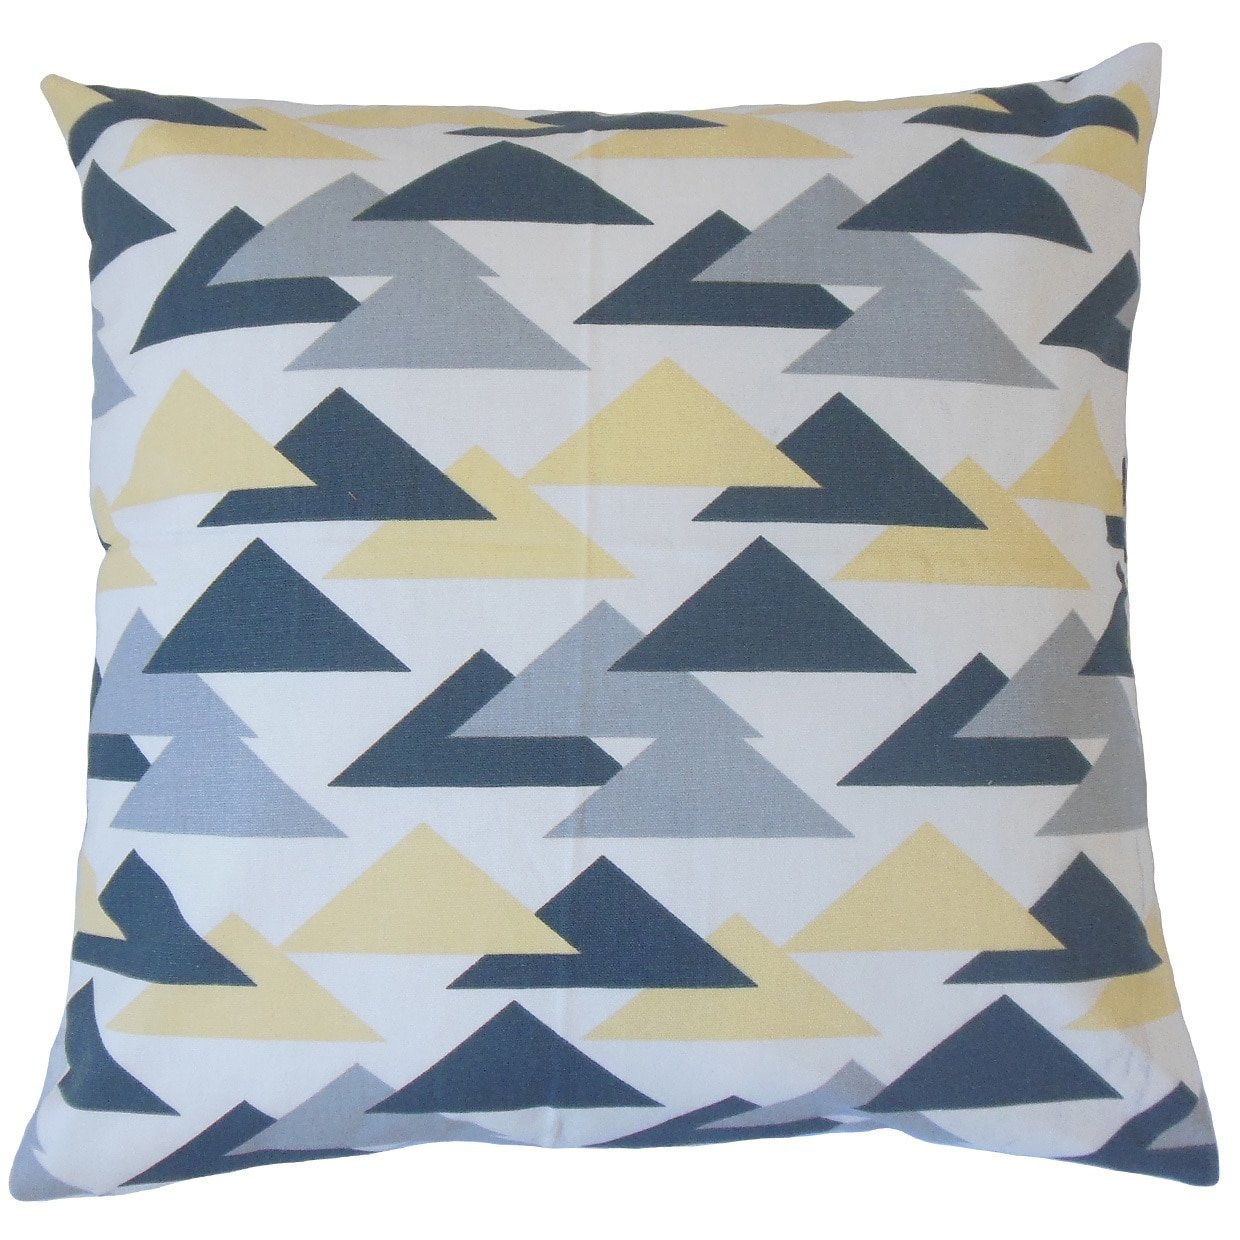 The Pillow Collection Wyome Geometric Luster Down Filled Throw Pillow